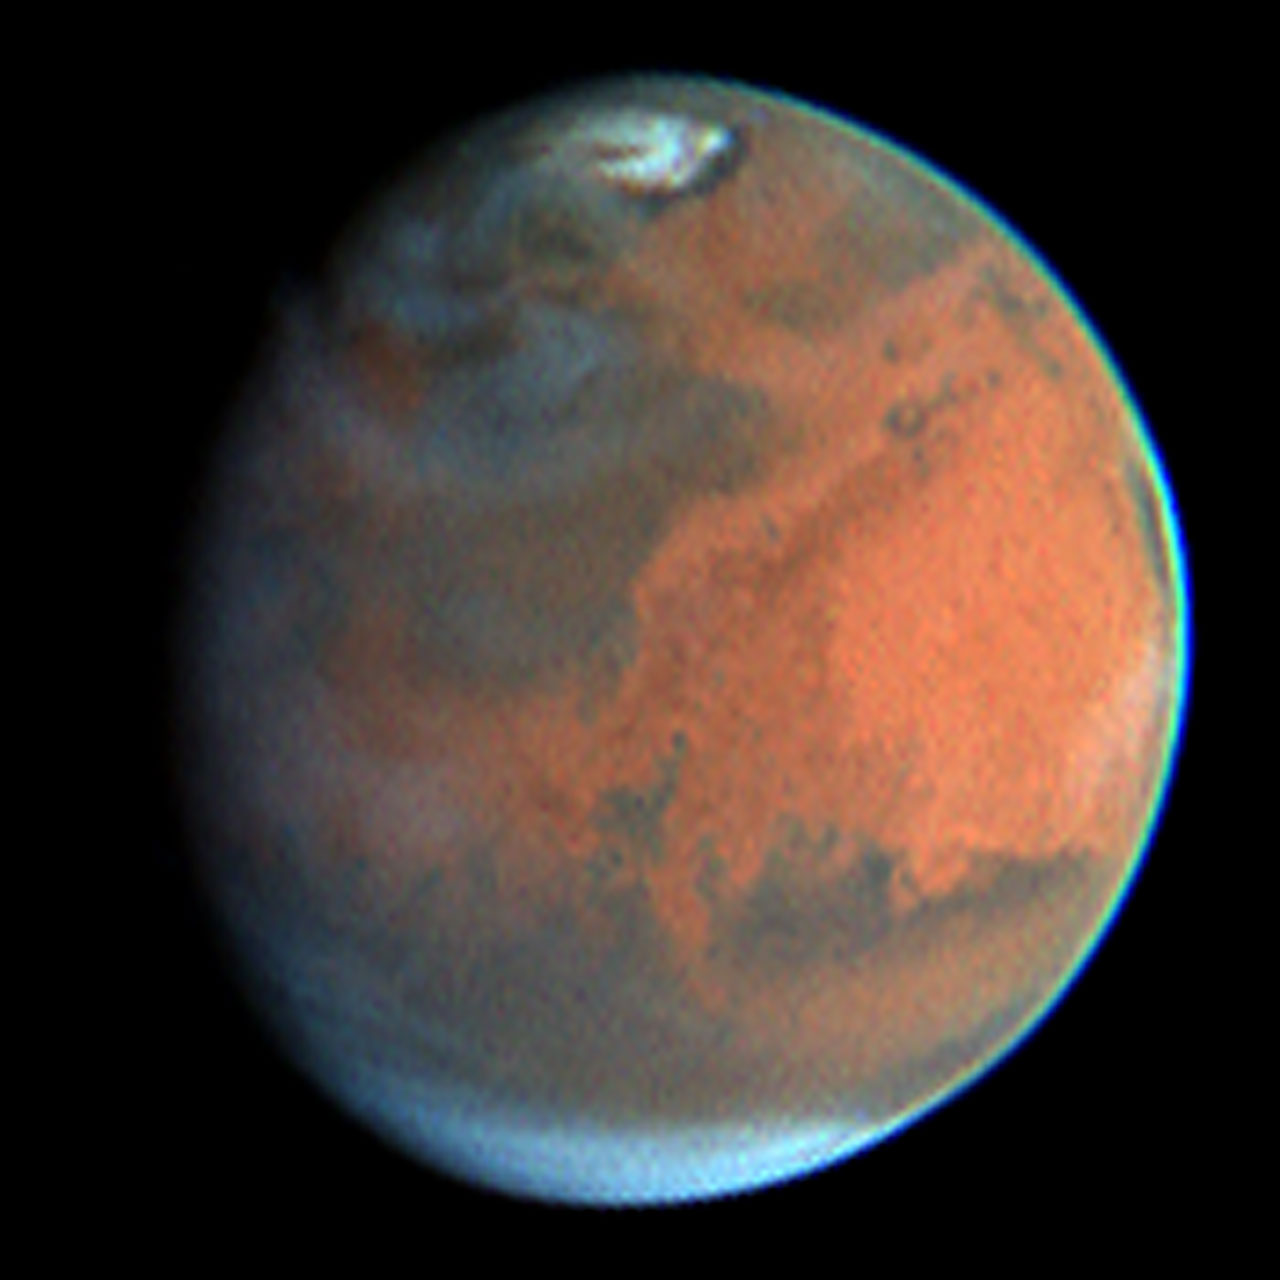 hubble images of mars - photo #25